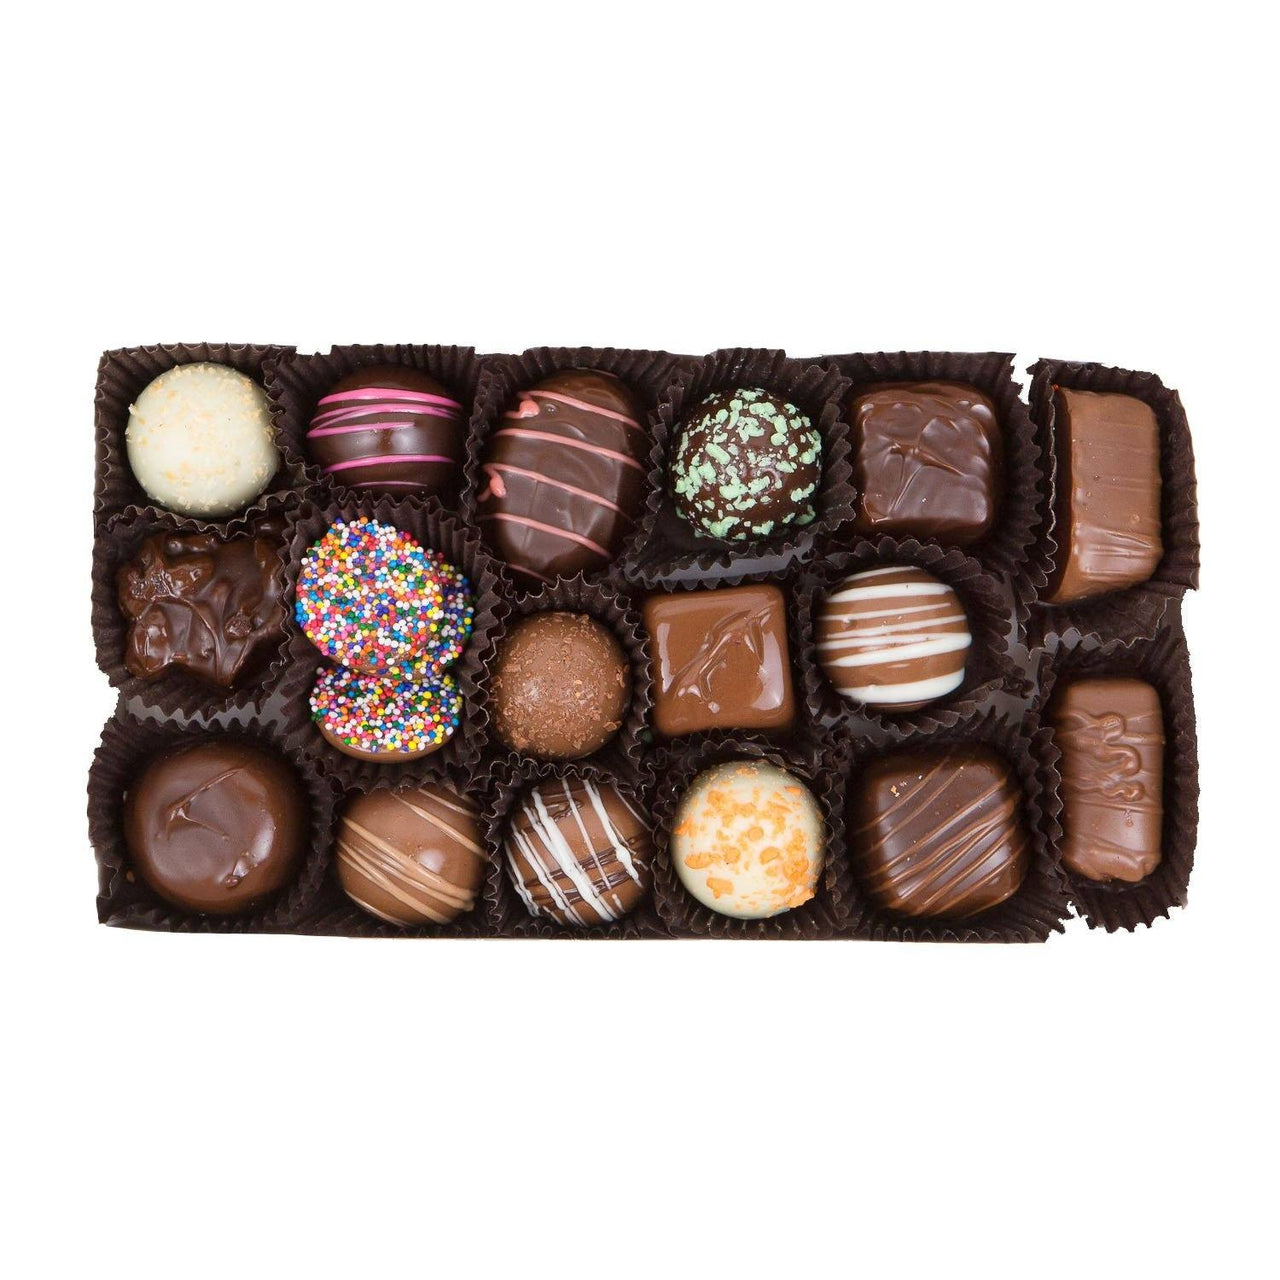 Stocking Stuffers 2019  - Chocolate Assortment Gift Box - Jackie's Chocolate (4336370483315)